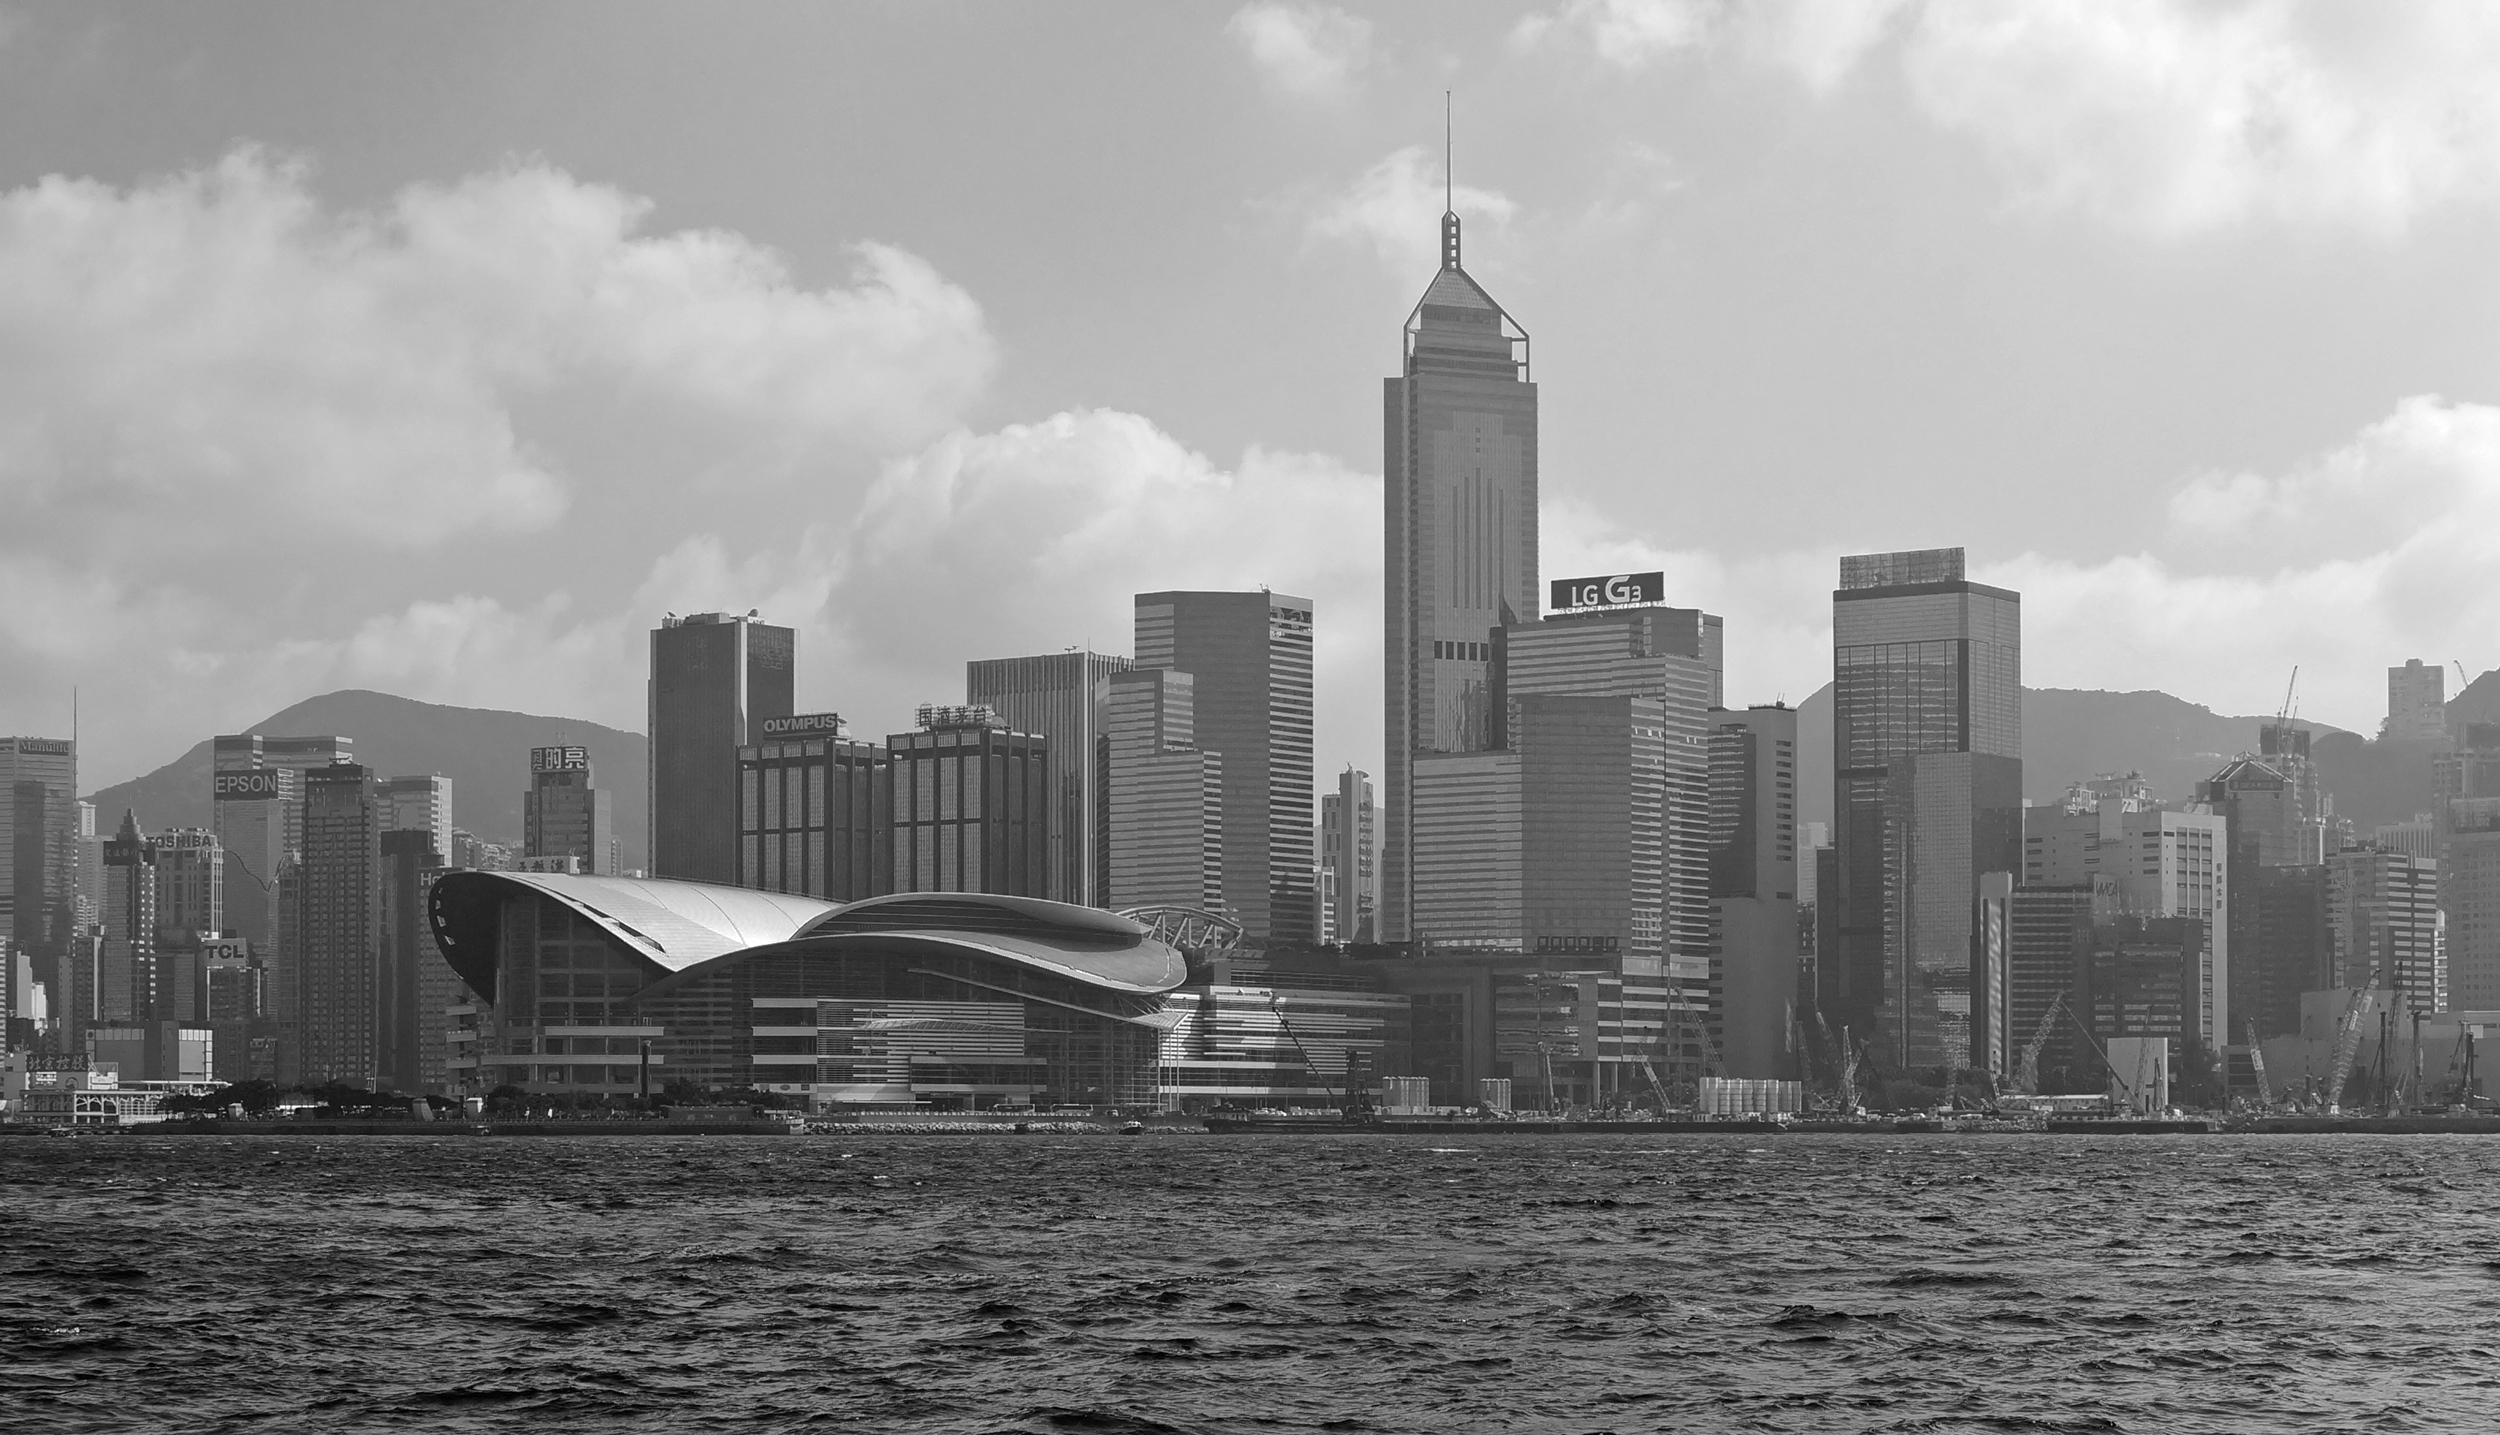 A black and white hazy view of the Convention Centre on Hong Kong Island -